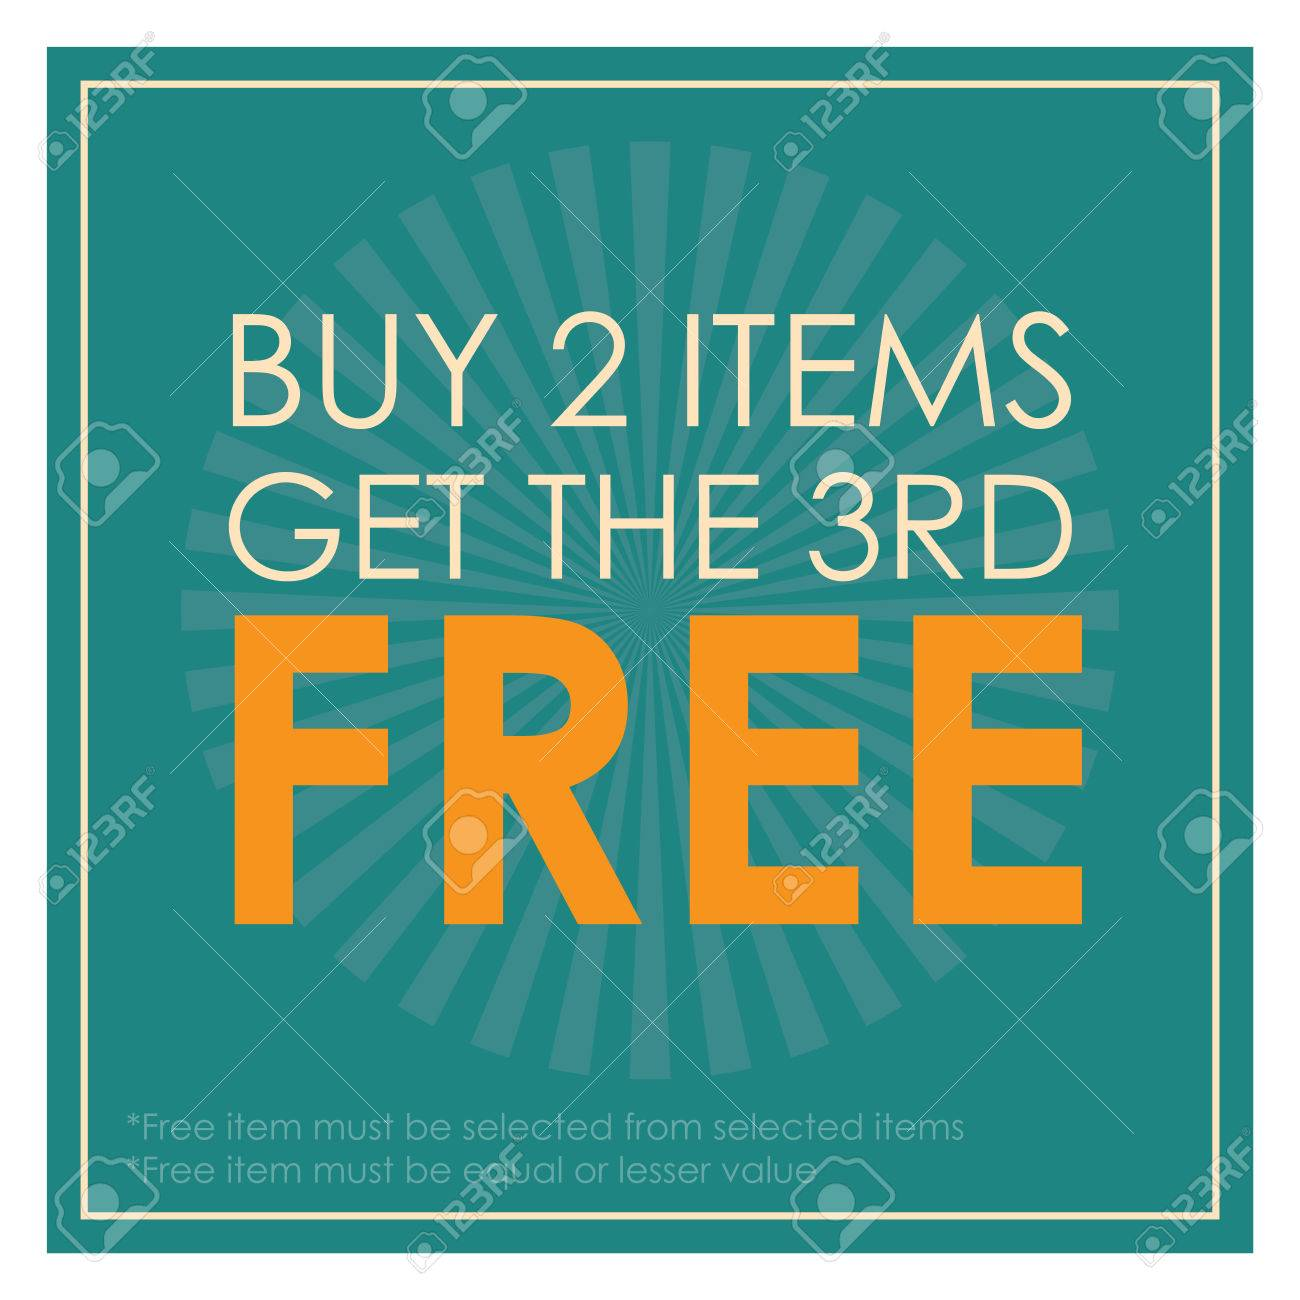 Blue Square Buy 2 Items Get The 3rd Poster Leaflet Handbill 1300x1300